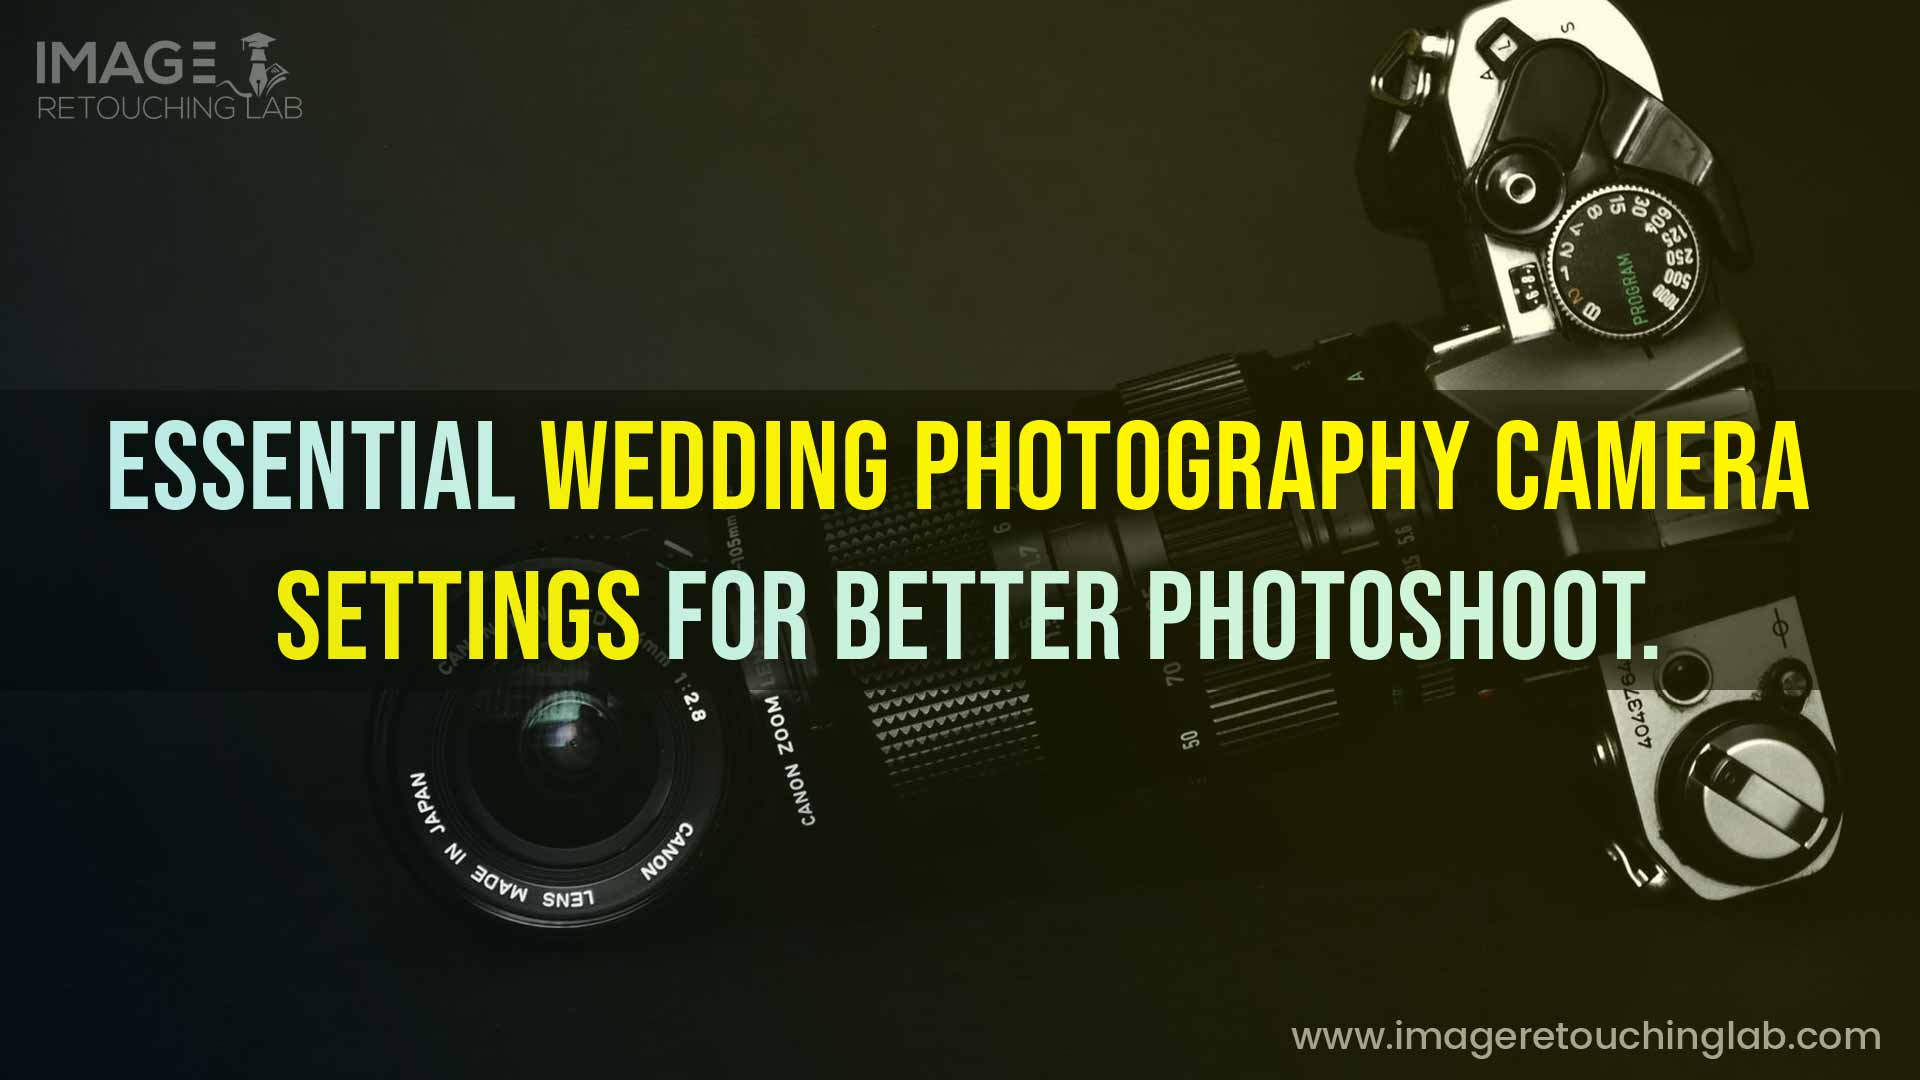 Essential Wedding Photography Camera Settings for Better Photoshoot